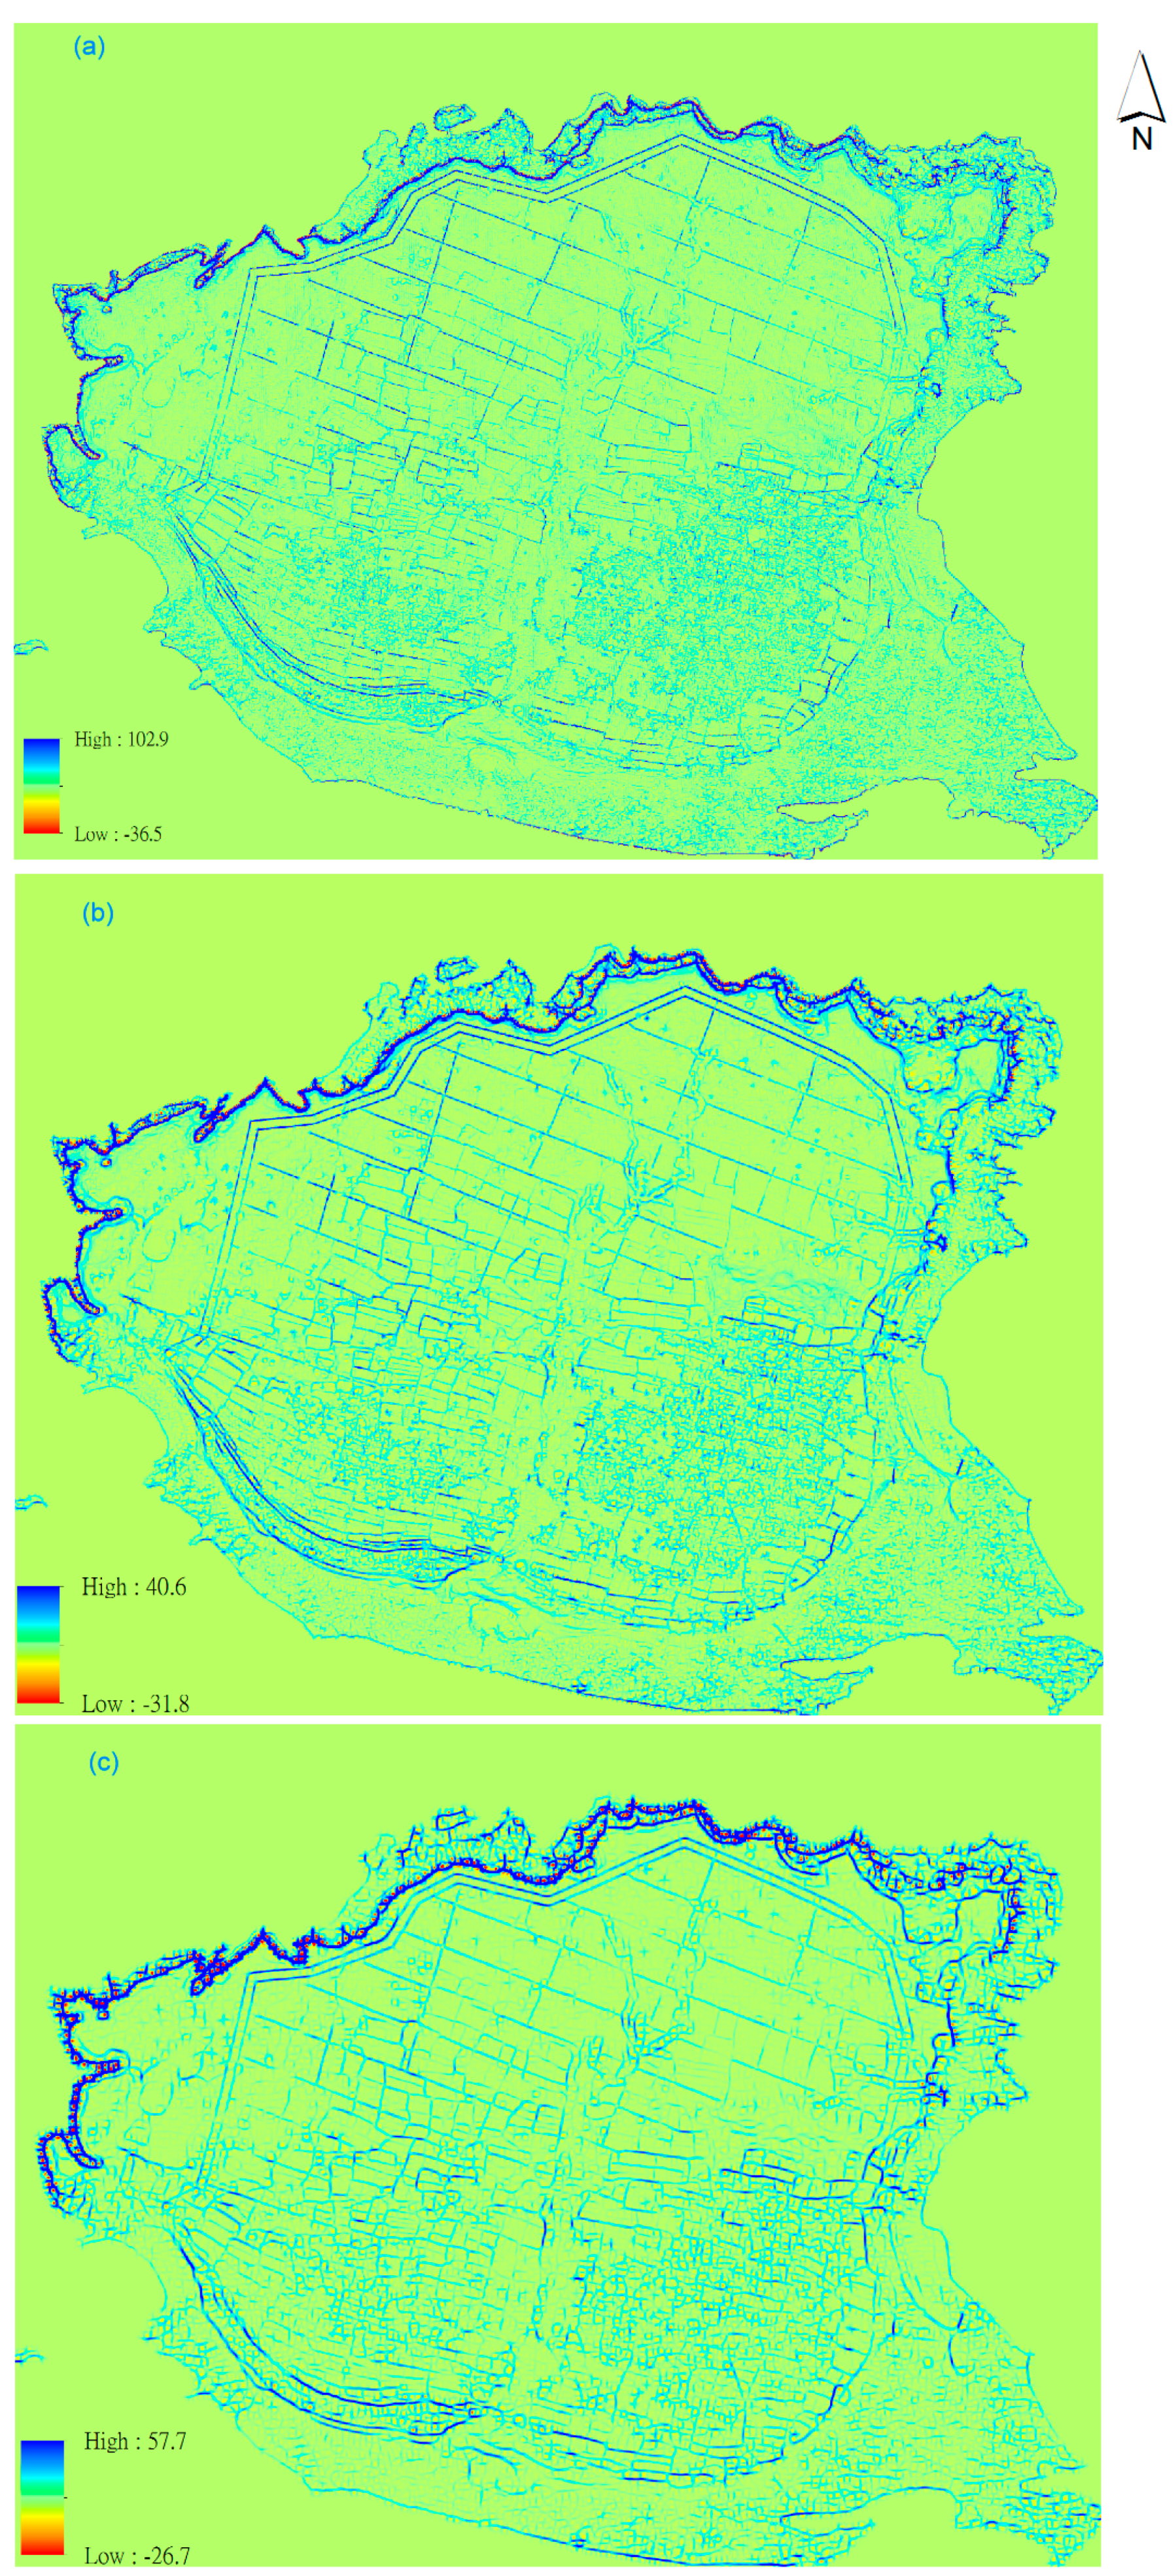 IJGI | Free Full-Text | Historic Low Wall Detection via Topographic